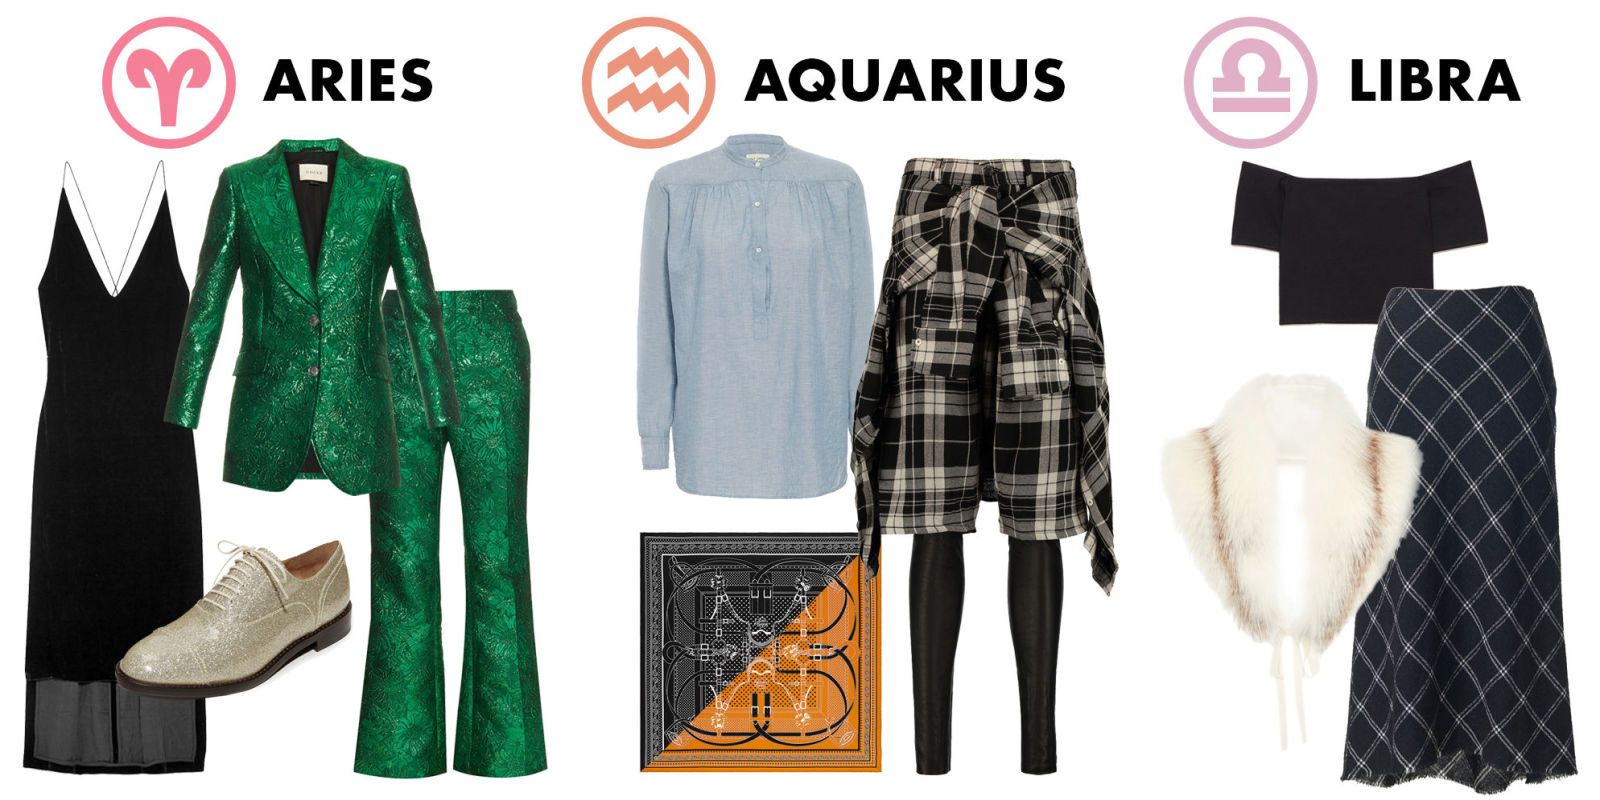 Your Fall Fashion Starter Pack, According to Your Sign